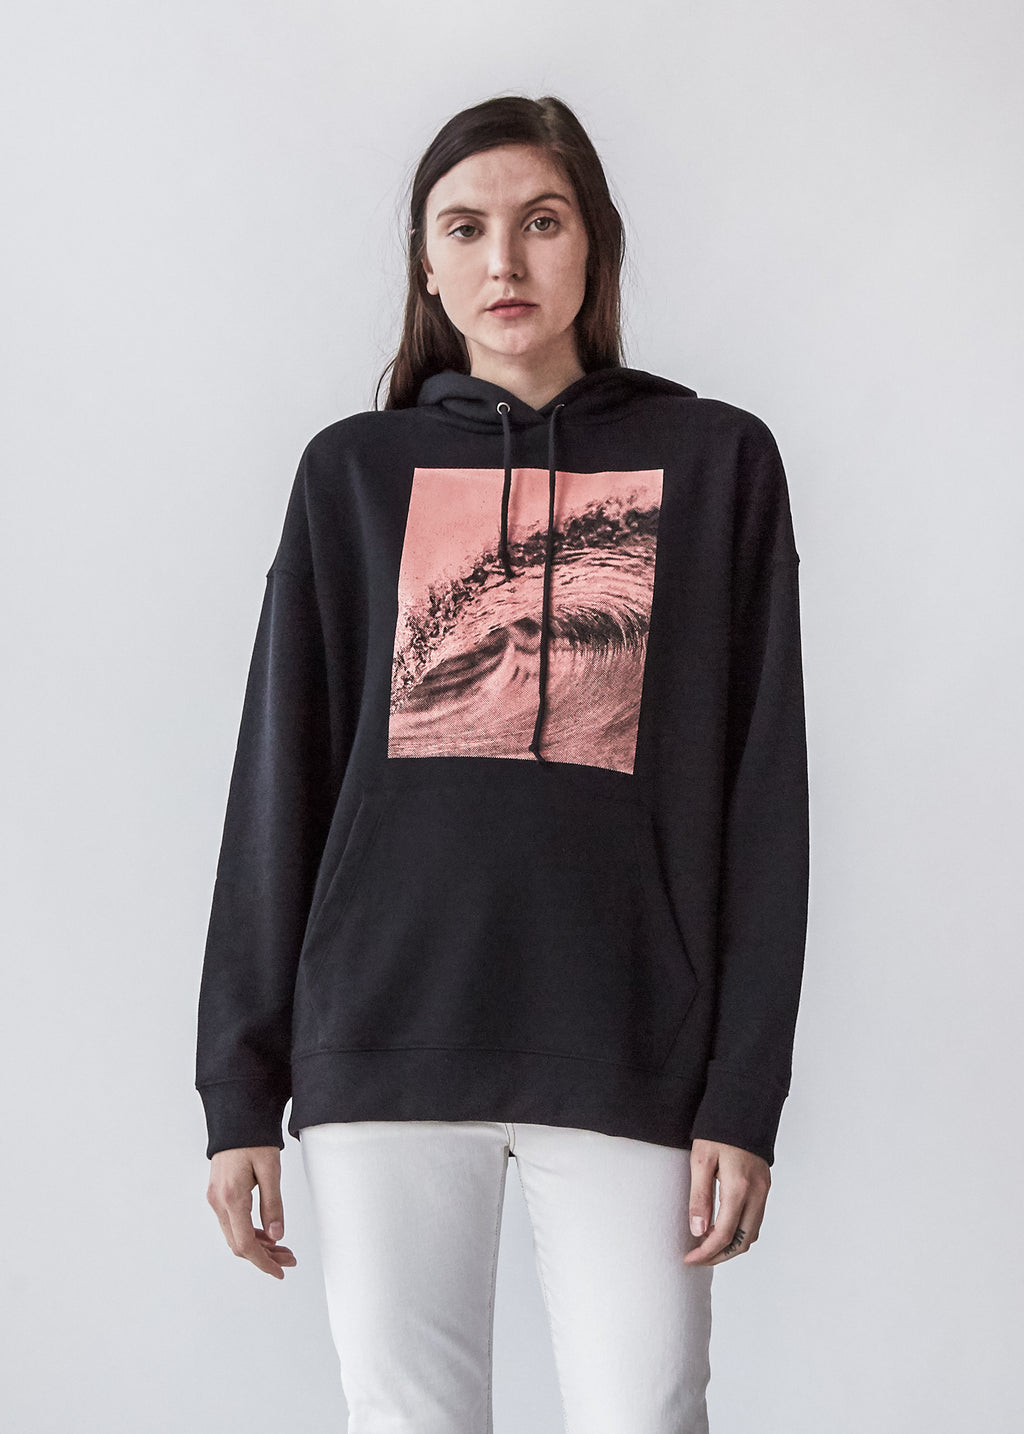 Wave Long Sleeve Hoodie in Black Graphic